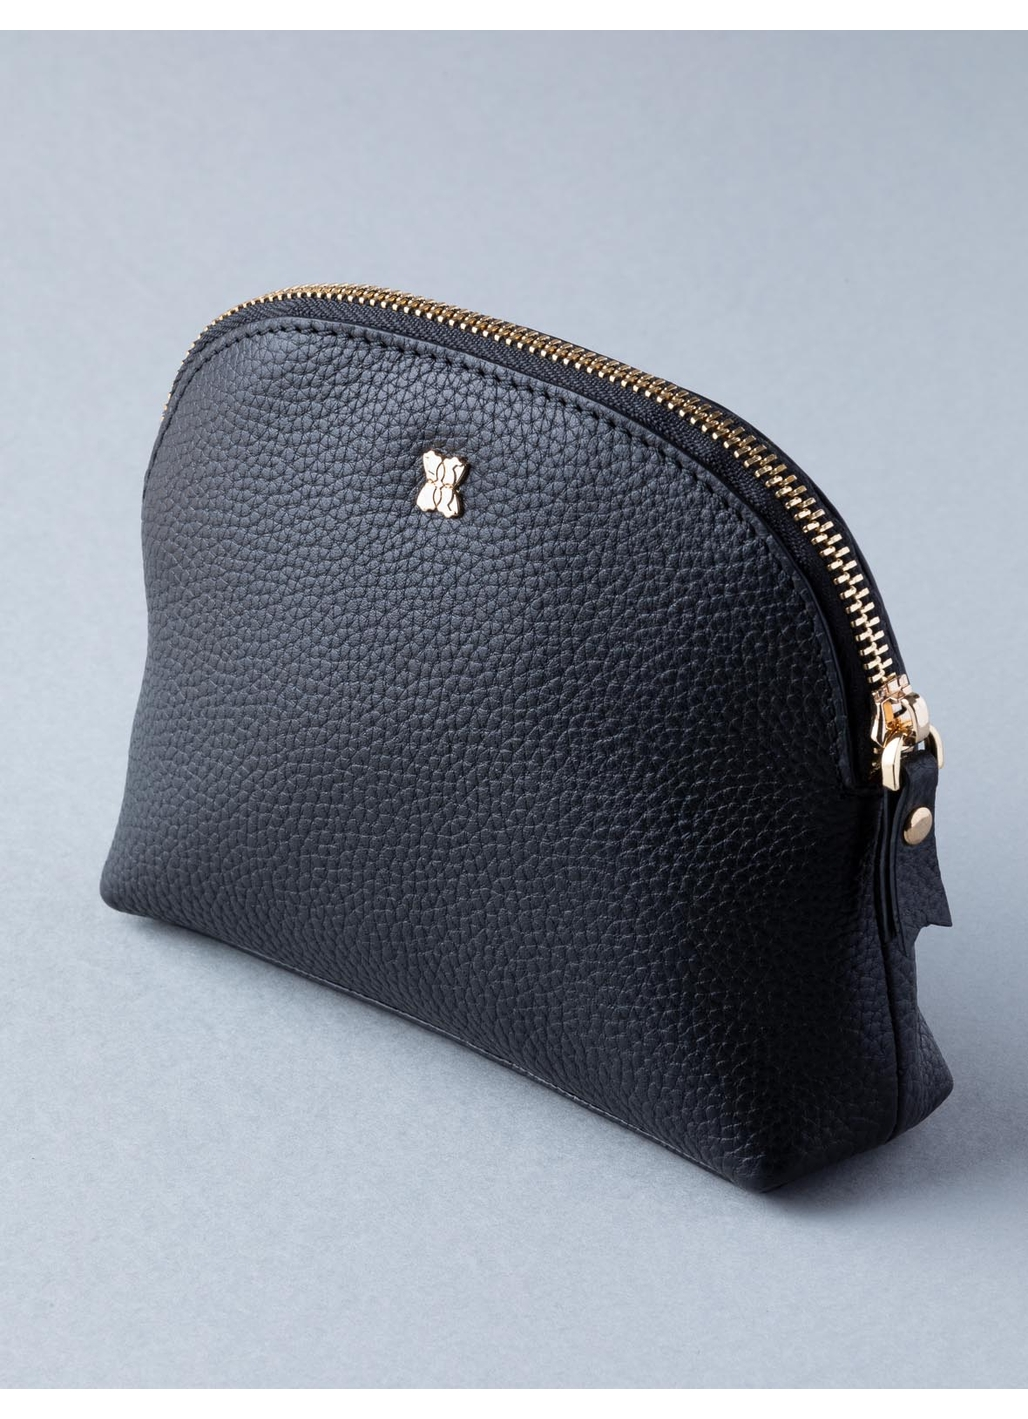 Medium Contrast Leather Cosmetic Case in Black